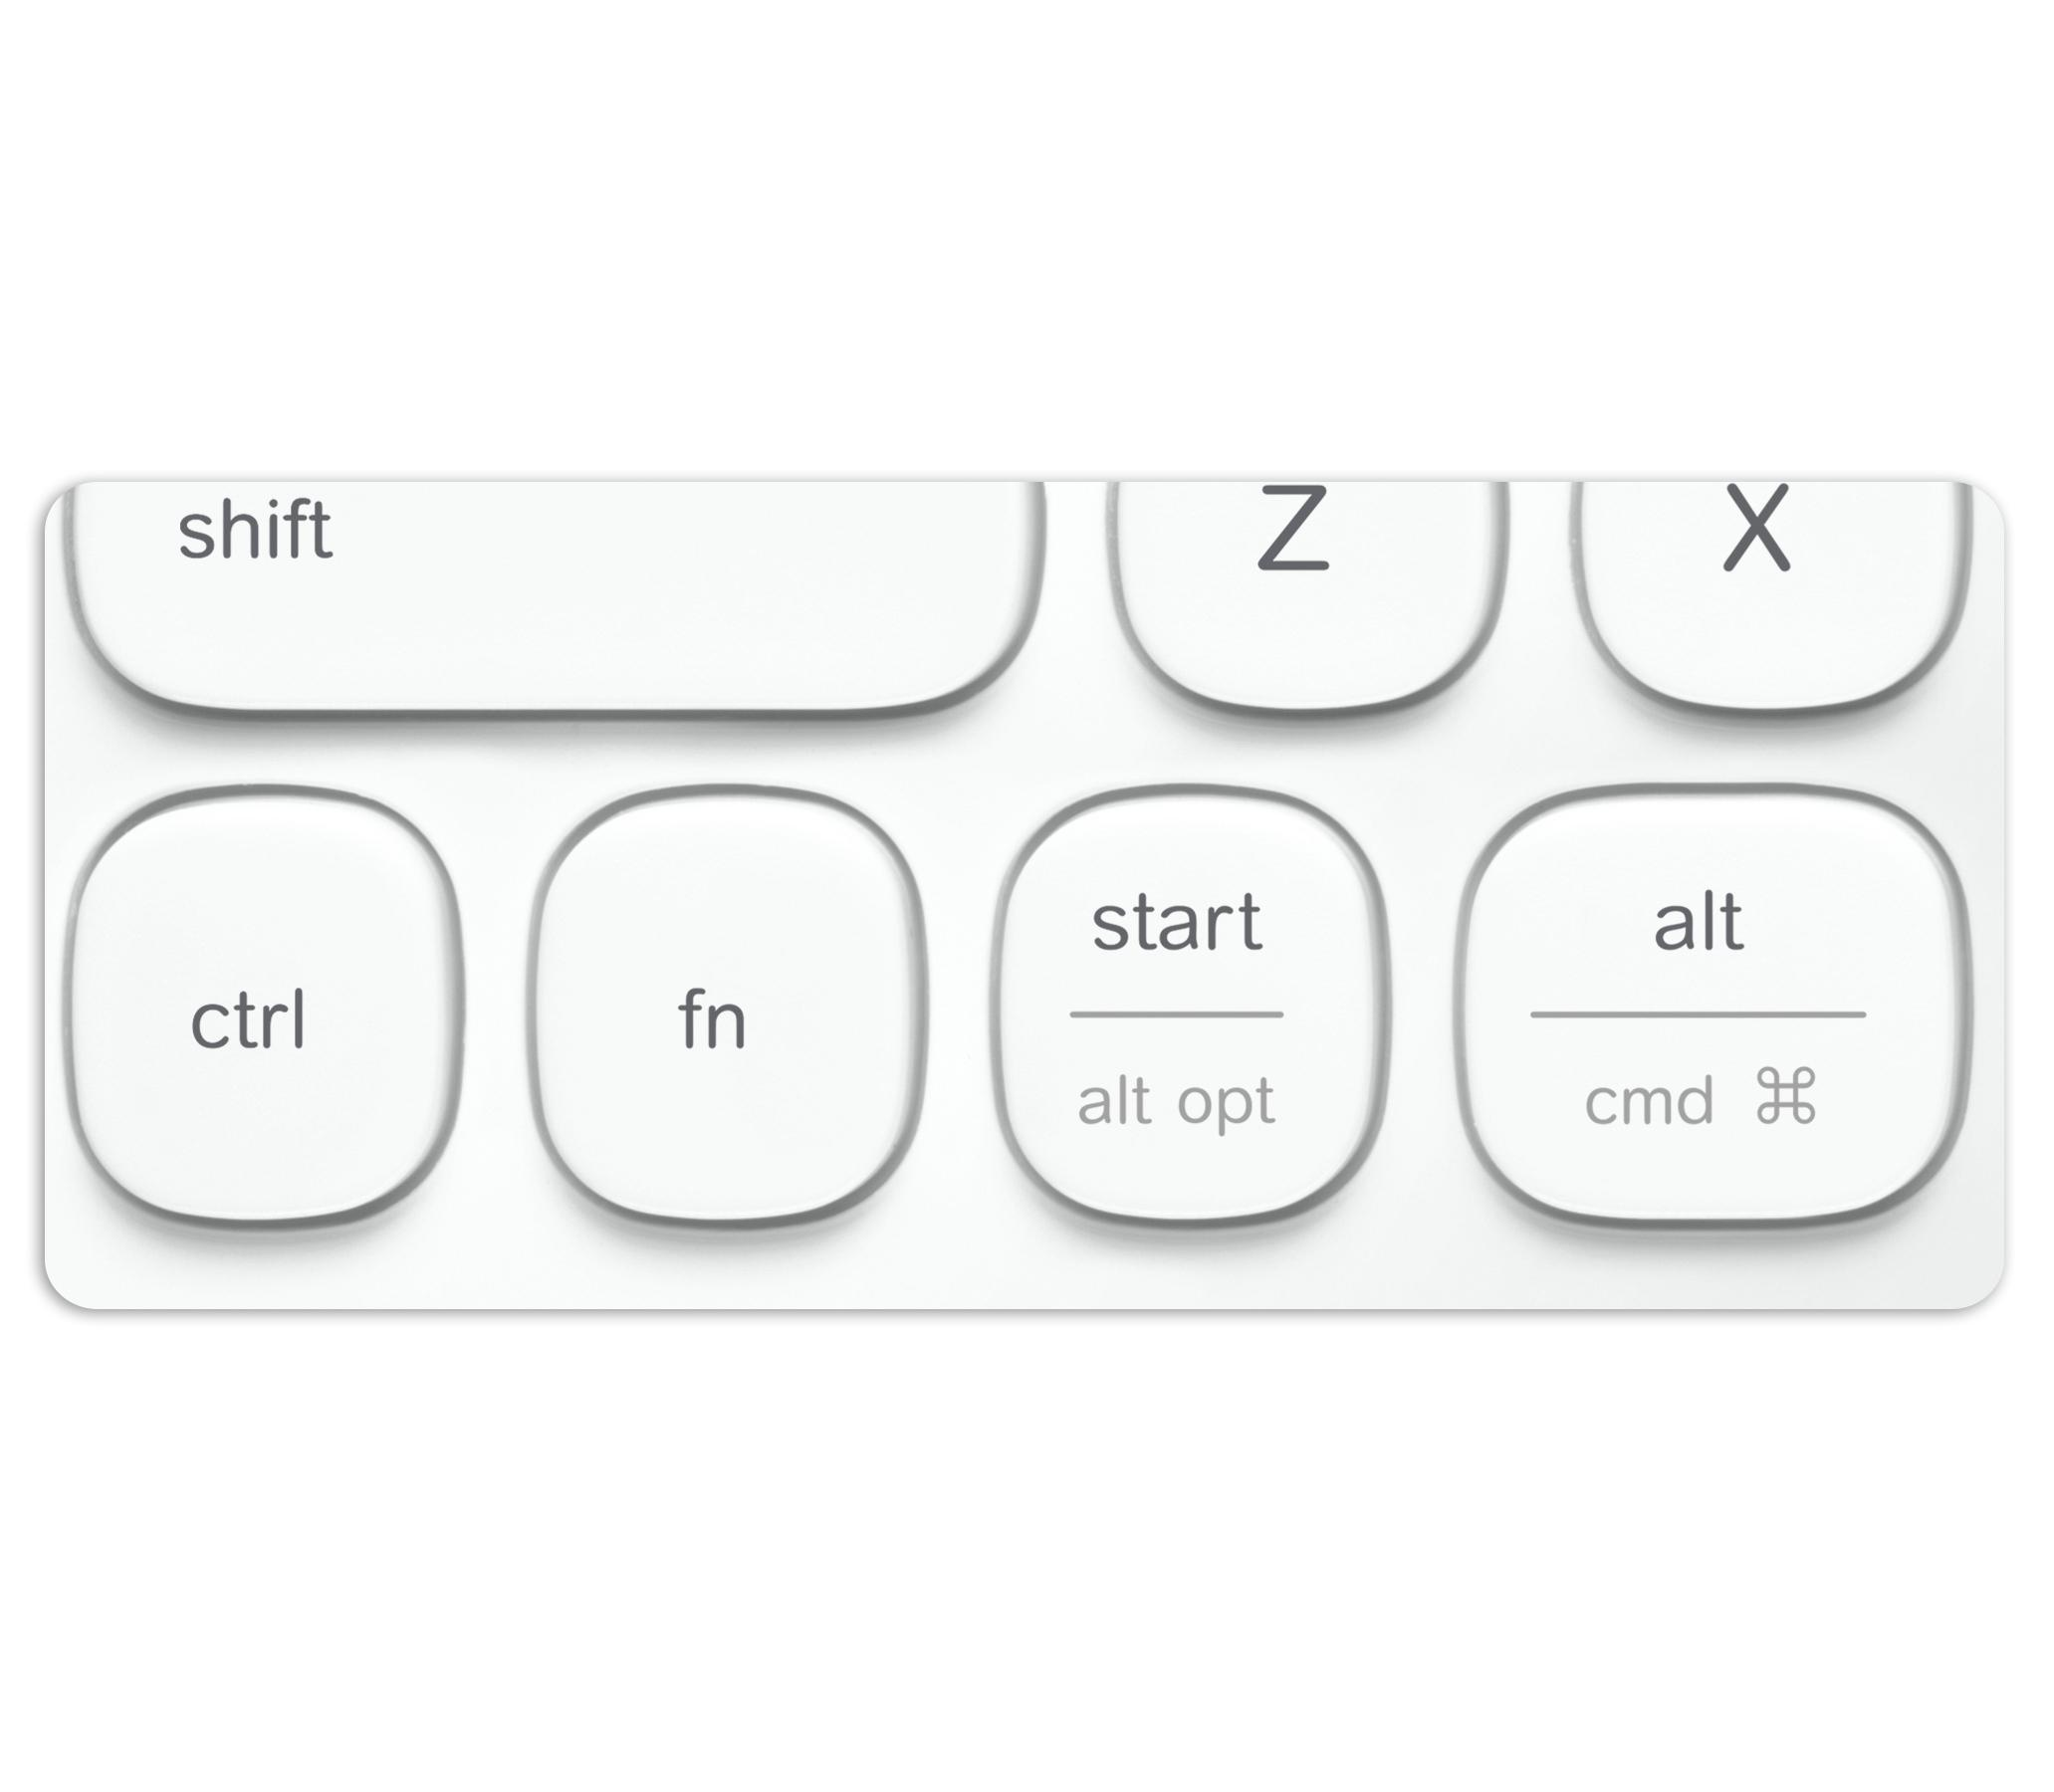 Windows And Mac Android And Ios You Ll Find A Familiar Keyboard Layout With All The Shortcut